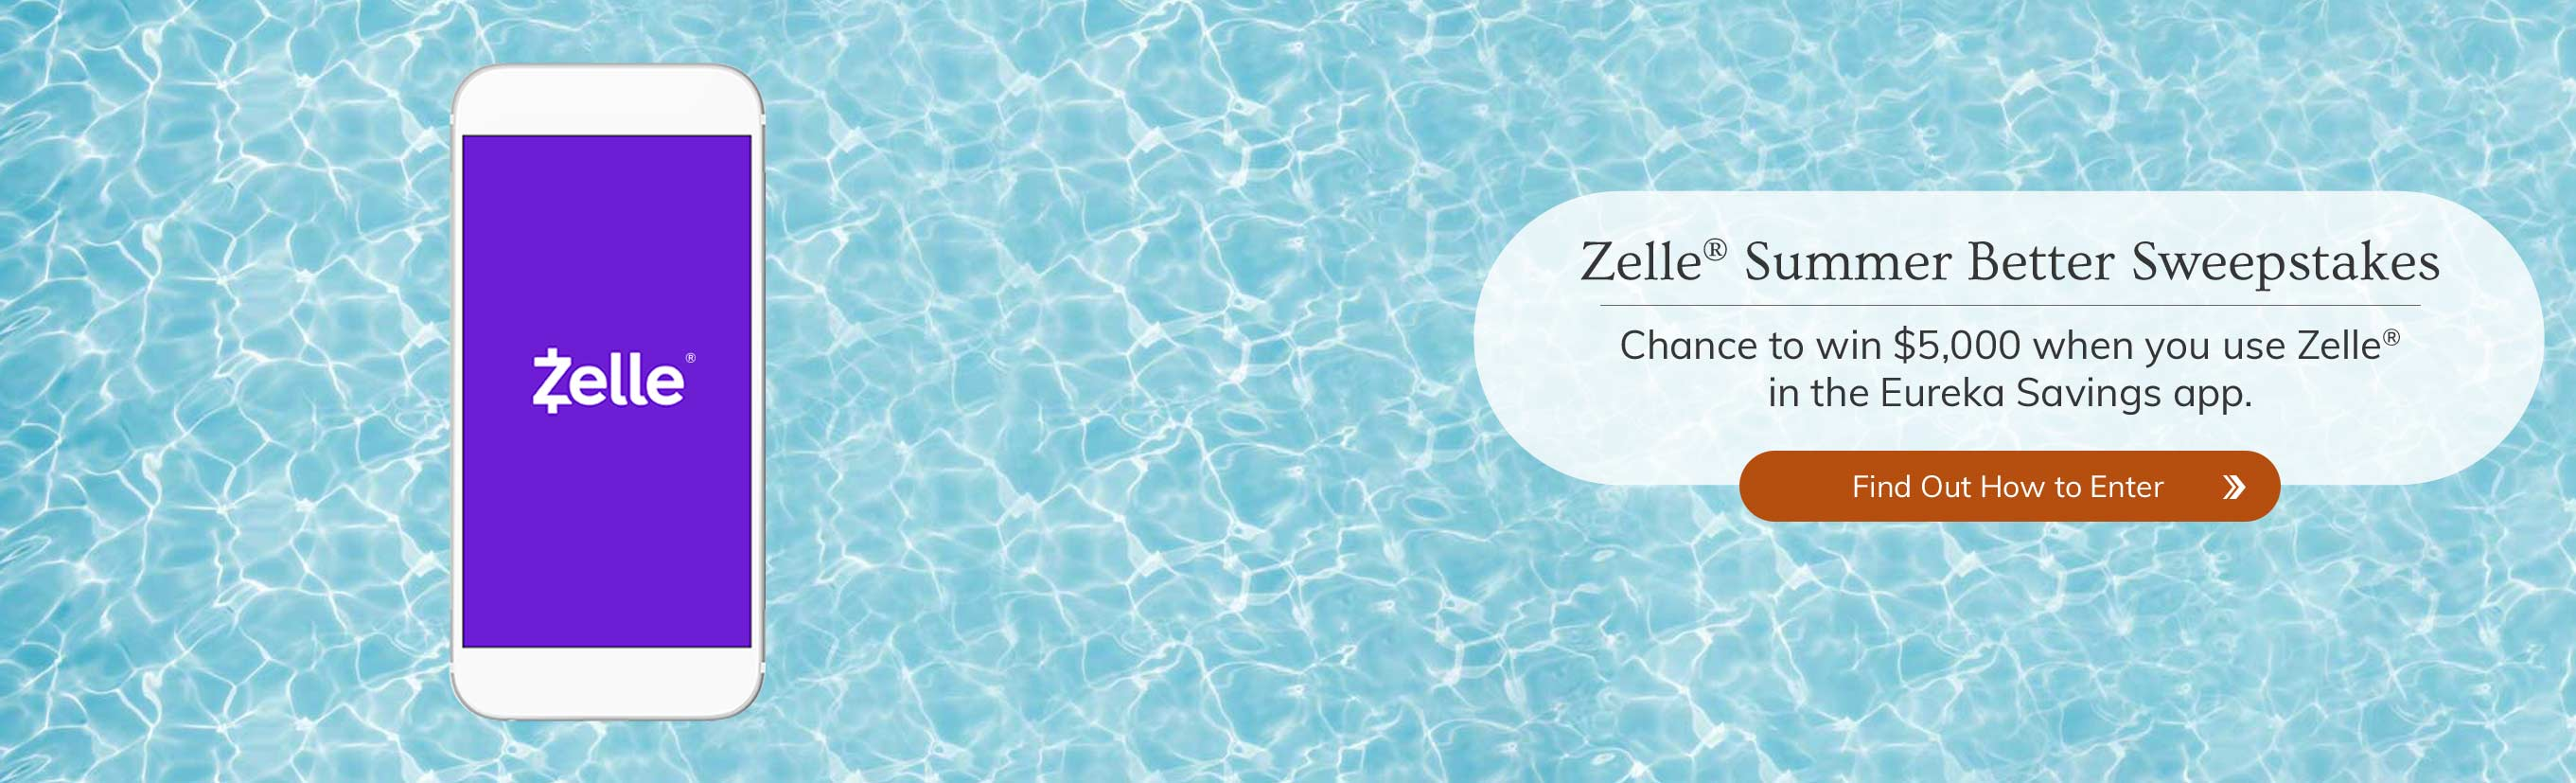 Zelle Summer Better Sweepstakes chance to win $5,000 when you use Zelle in the Eureka Savings app. Find out how to Enter